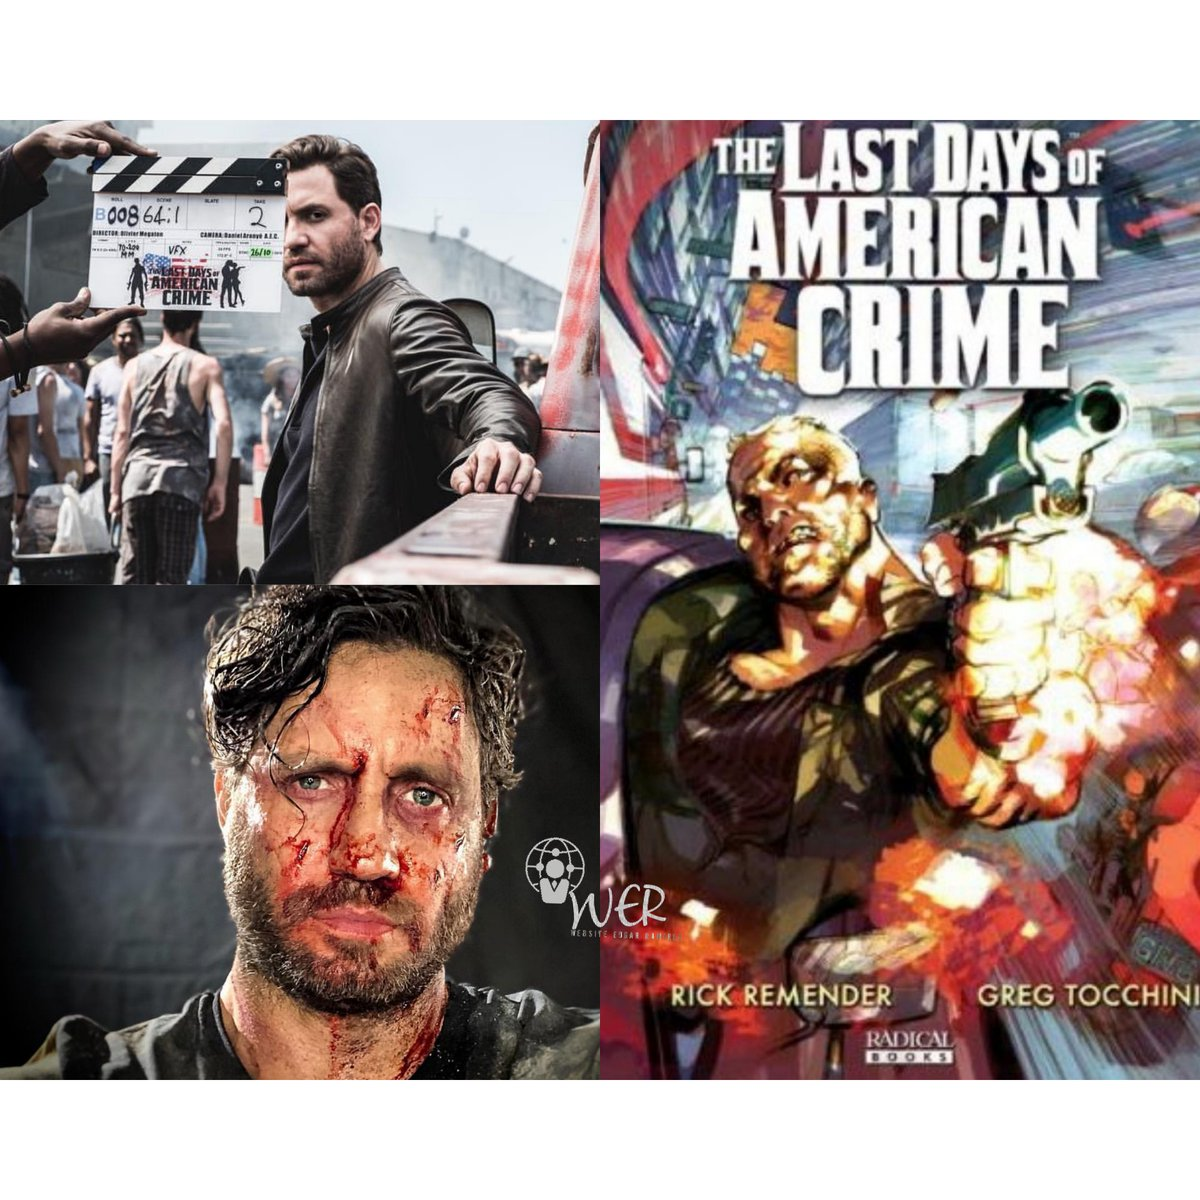 Website Wer On Twitter Fyi Exclusive Edgarramirez25 Movie The Last Days Of American Crime Set For Summer Release On Netflix Https T Co Wgroduumma Via Collider Https T Co Qgdtwrlngj